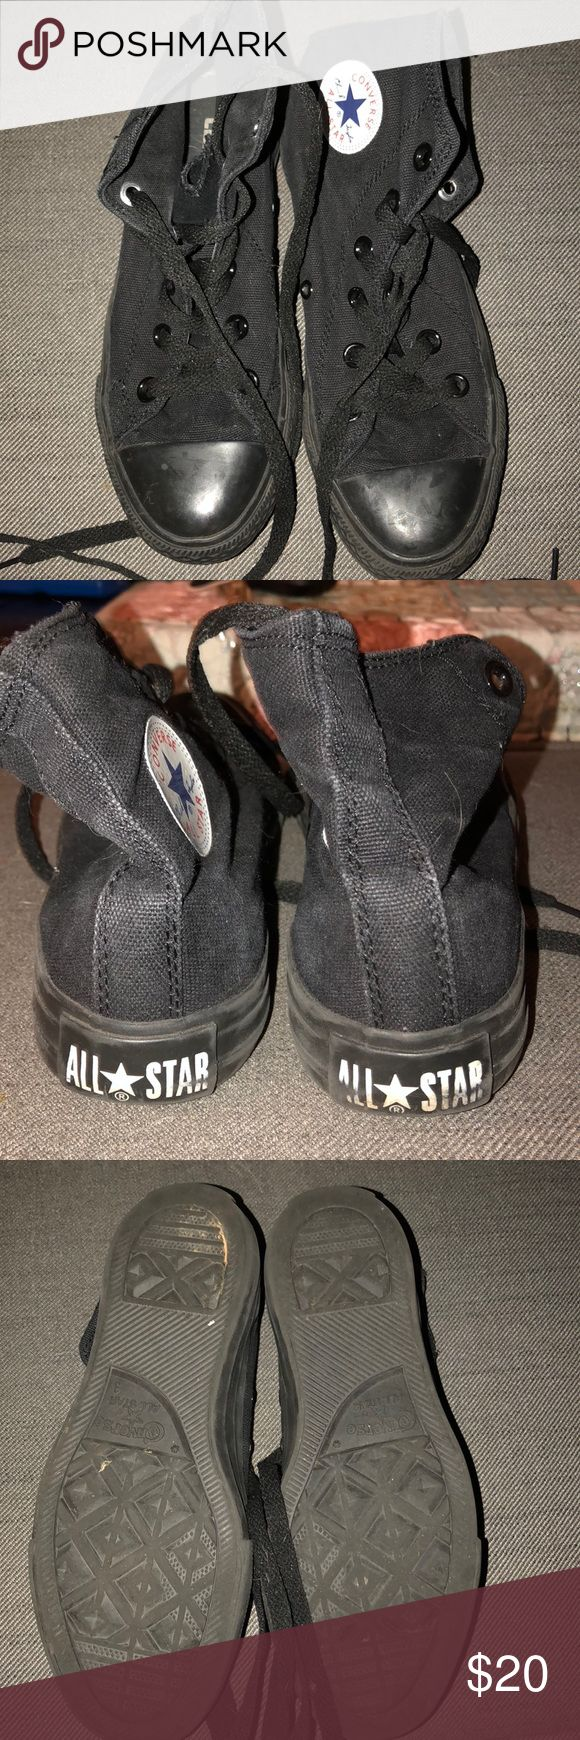 All black high top converse All black high top converse only worn a few times Converse Shoes Sneakers